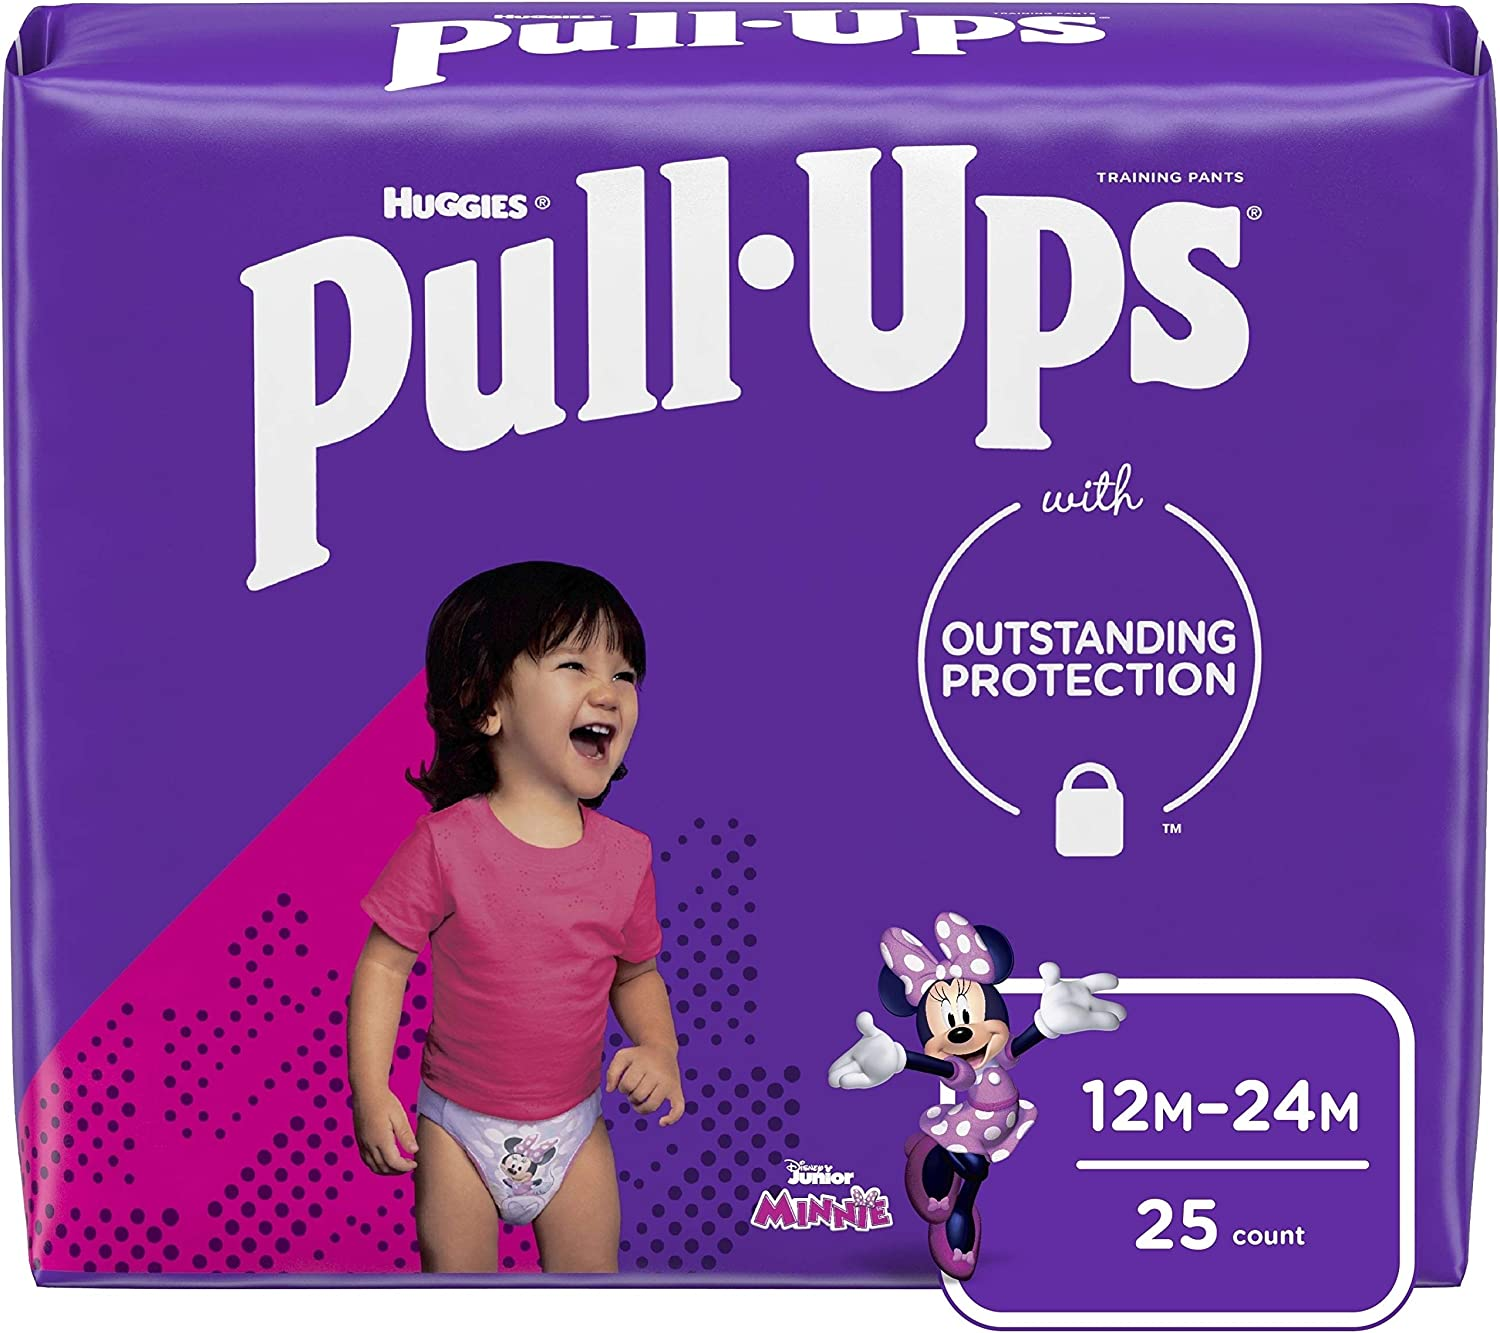 Pull-Ups Learning Designs Girls' Training Pants, 12-24M, 25 Ct